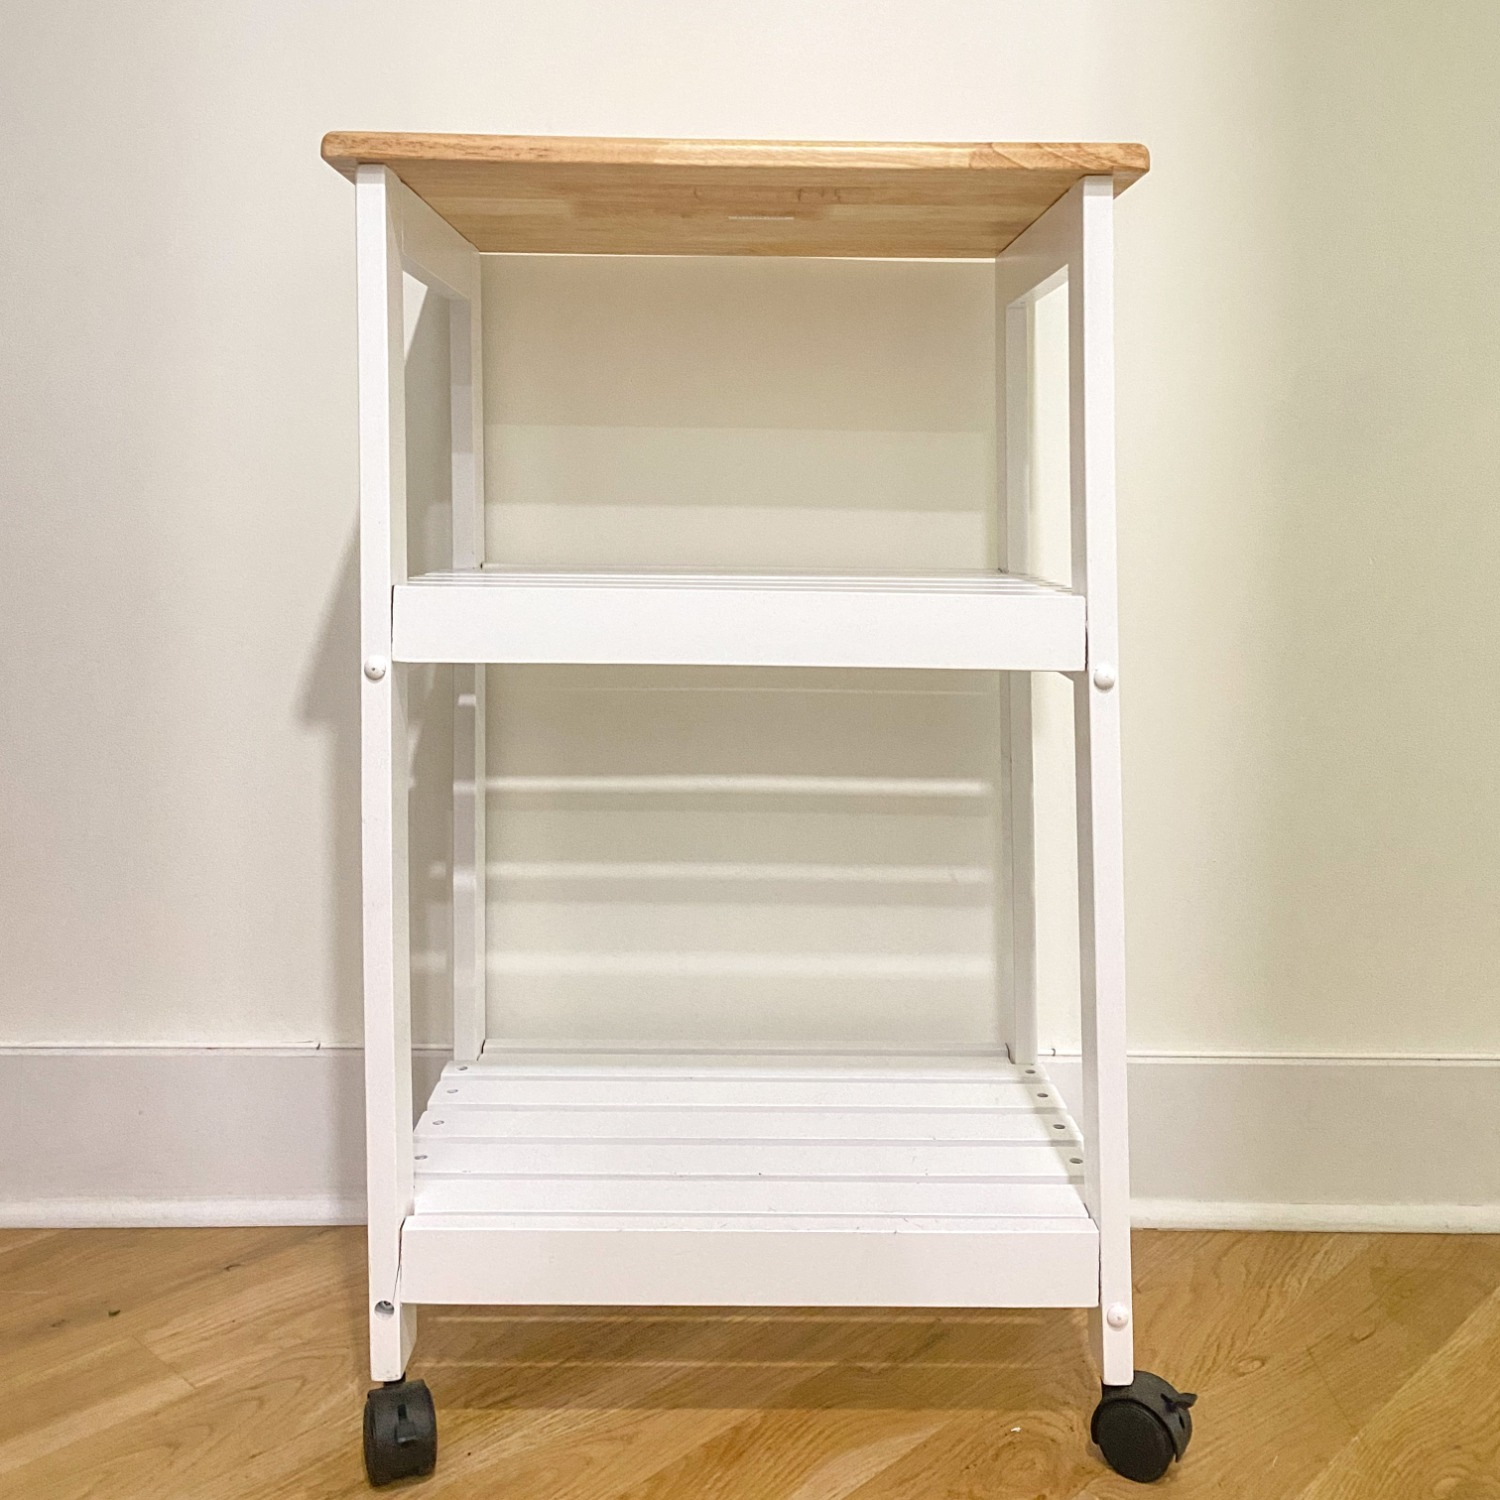 Utility Kitchen Cart/Microwave Stand - image-1